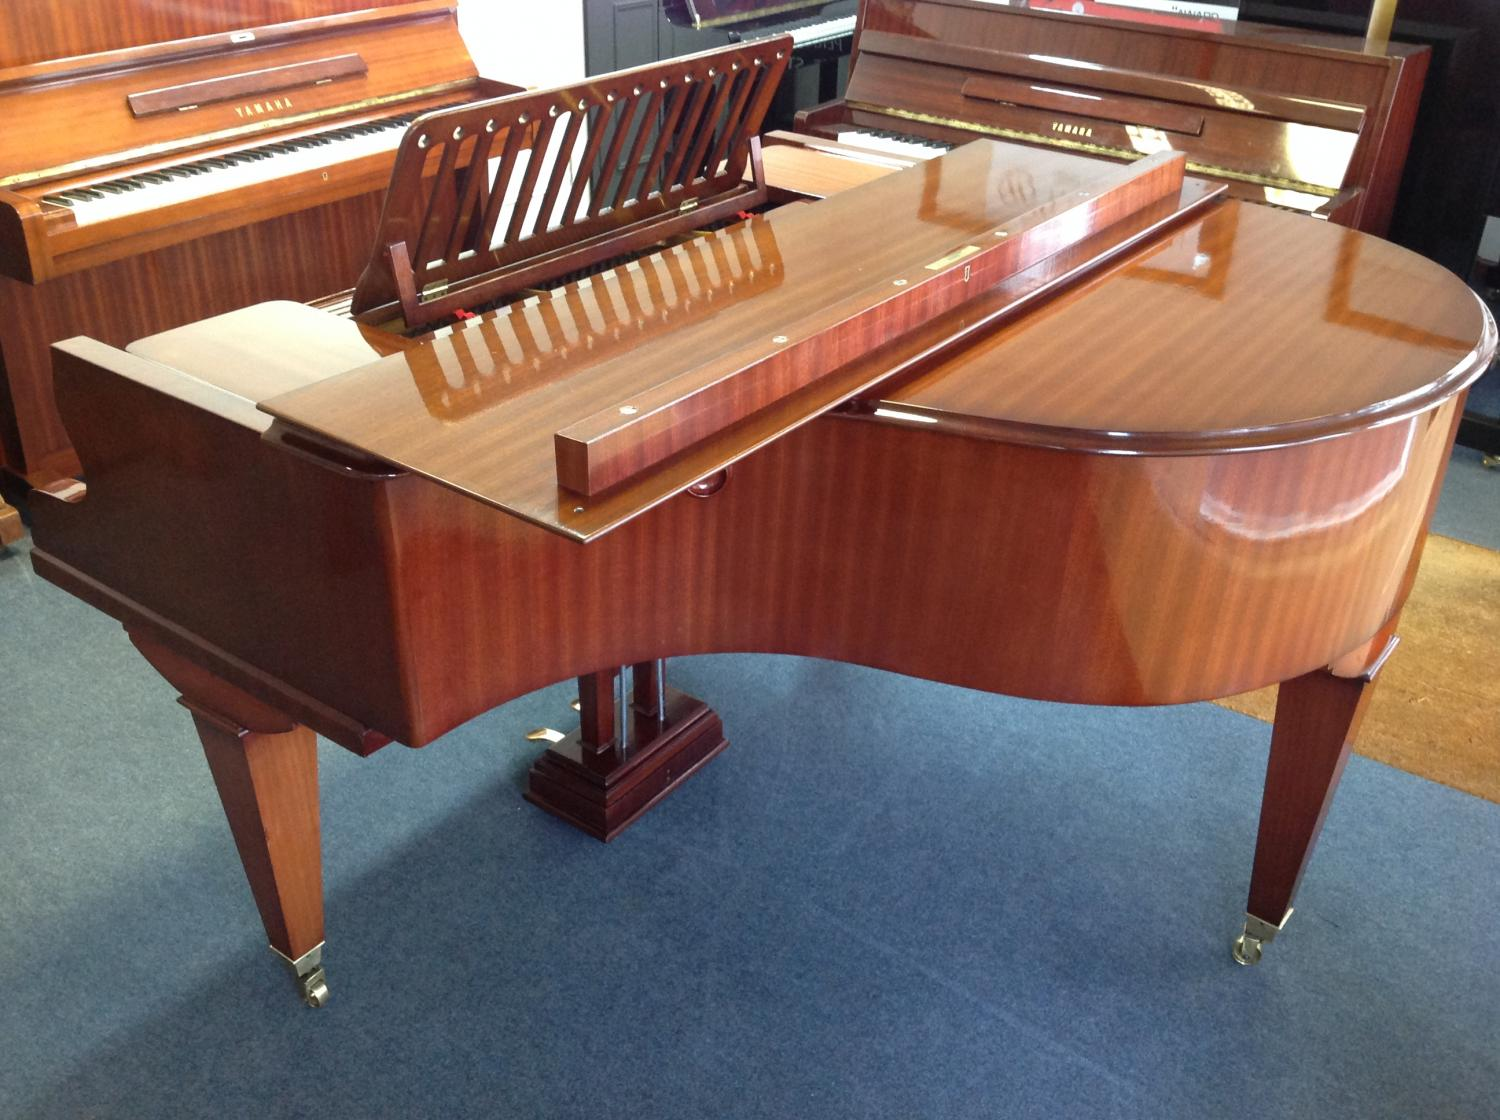 Karl meister grand piano for sale now reduced in grand for Smallest baby grand piano dimensions